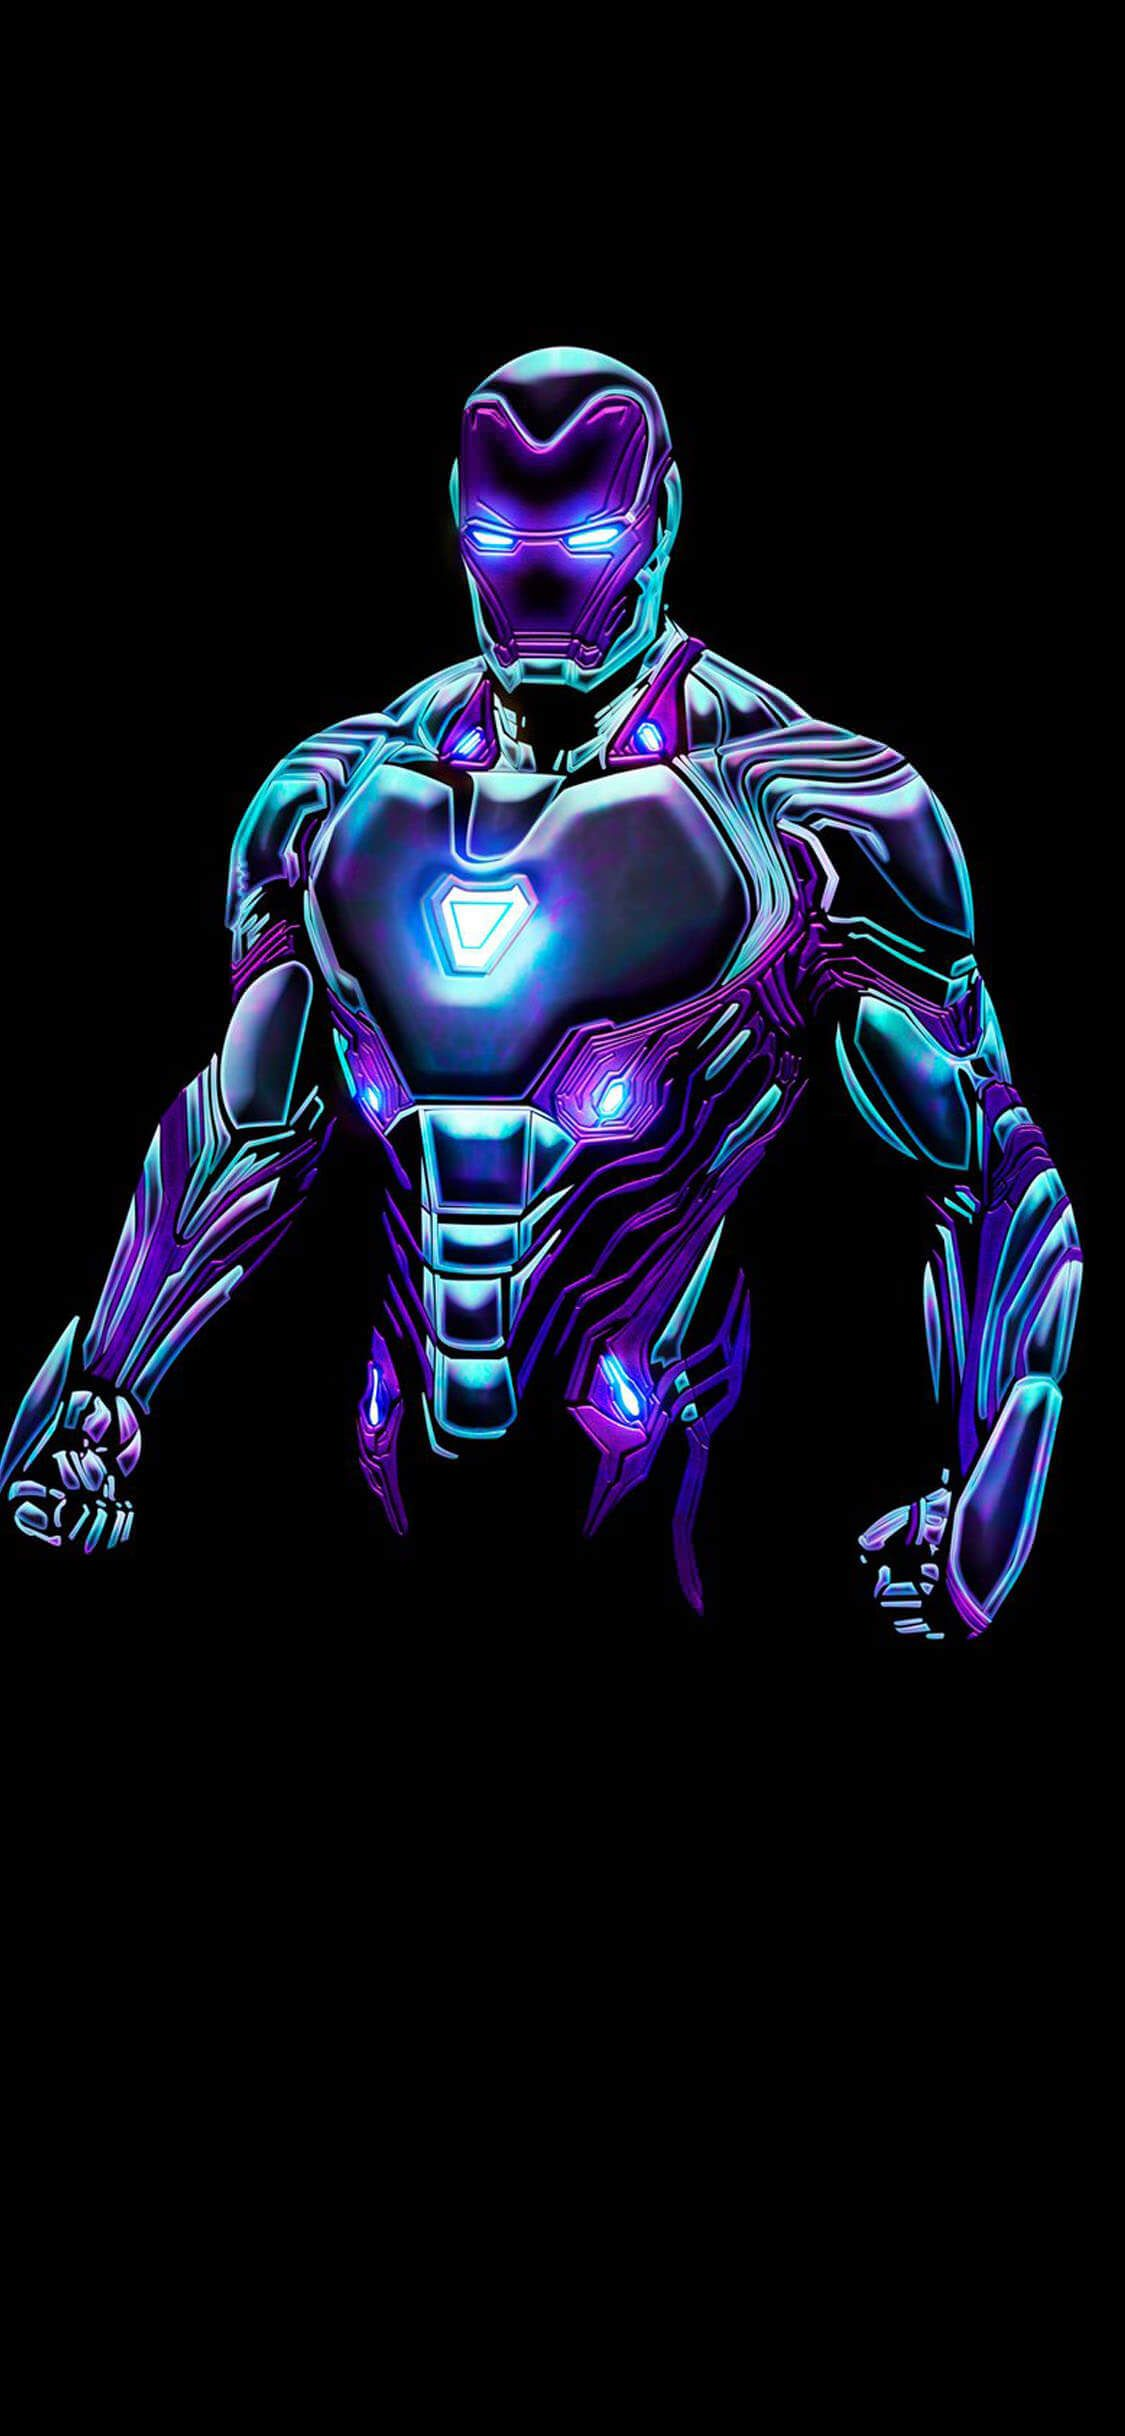 1125x2436 32+ Best Iron Man Iphone Wallpapers 2018 - Templatefor